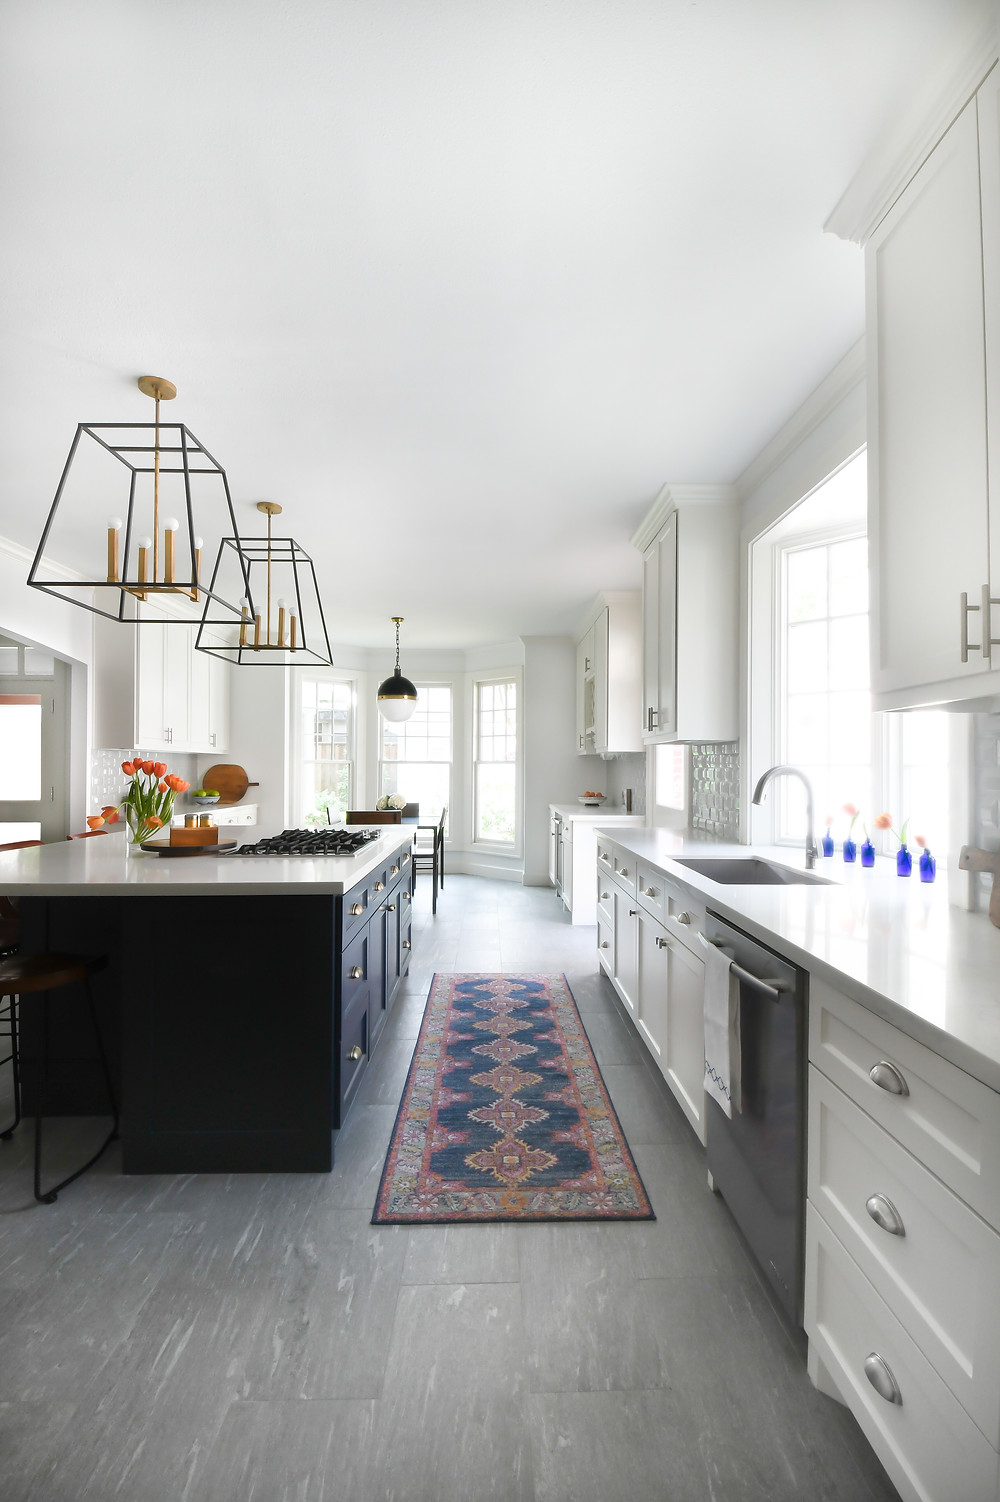 Modern transitional kitchen by Houston interior design firm Nancy Lane Interiors